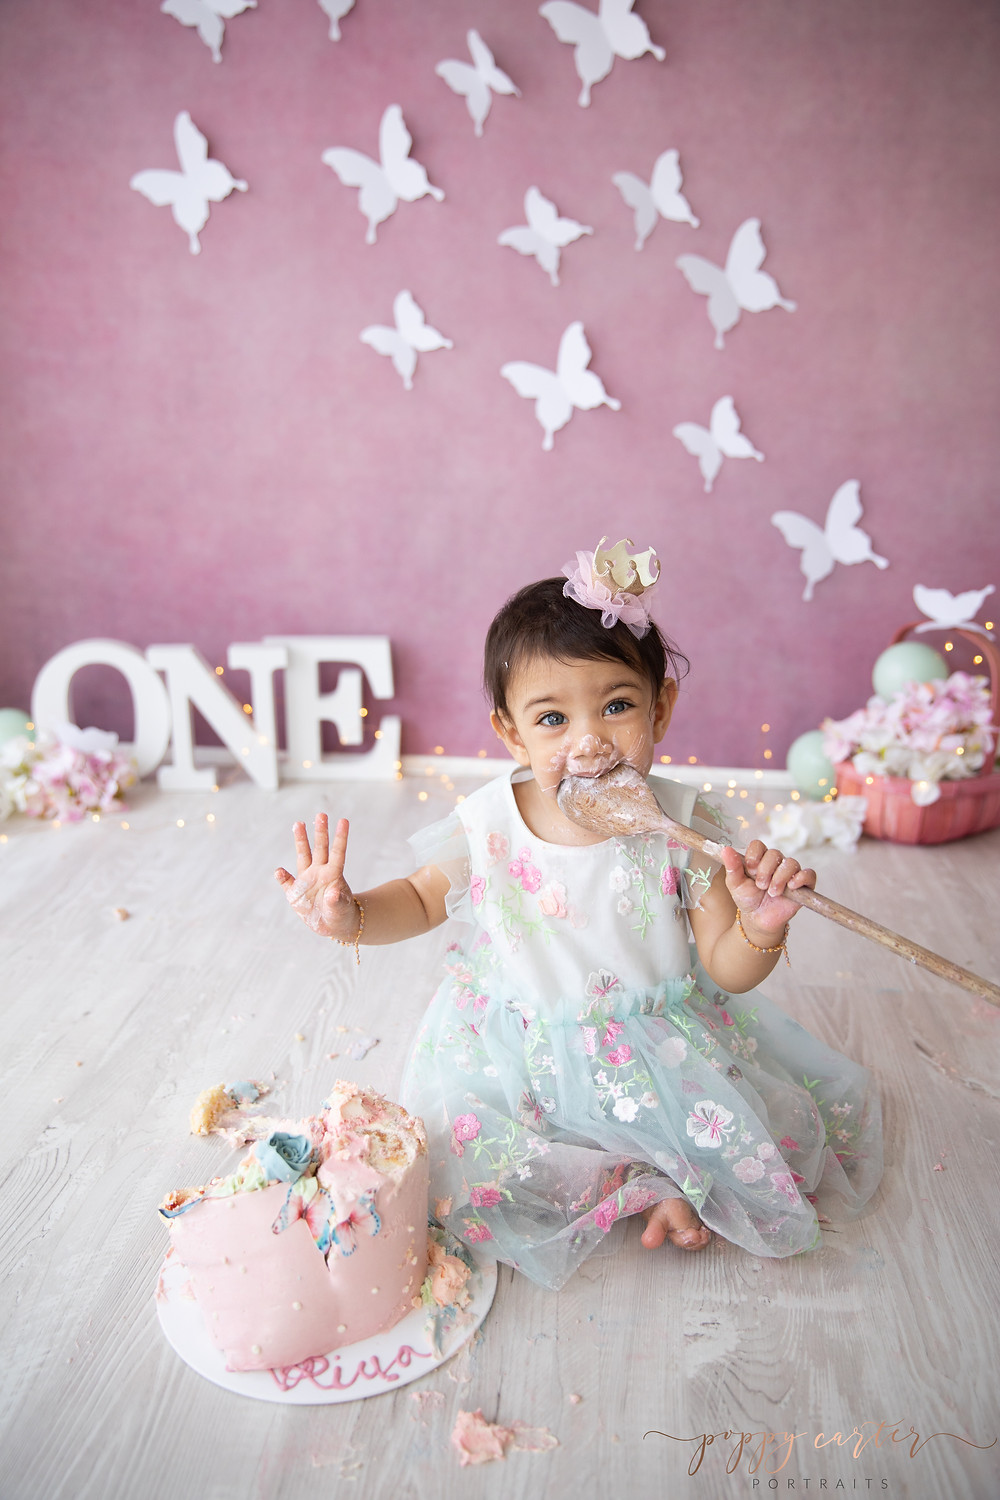 Poppy Carter Portraits Cake Smash Photography Buckinghamshire